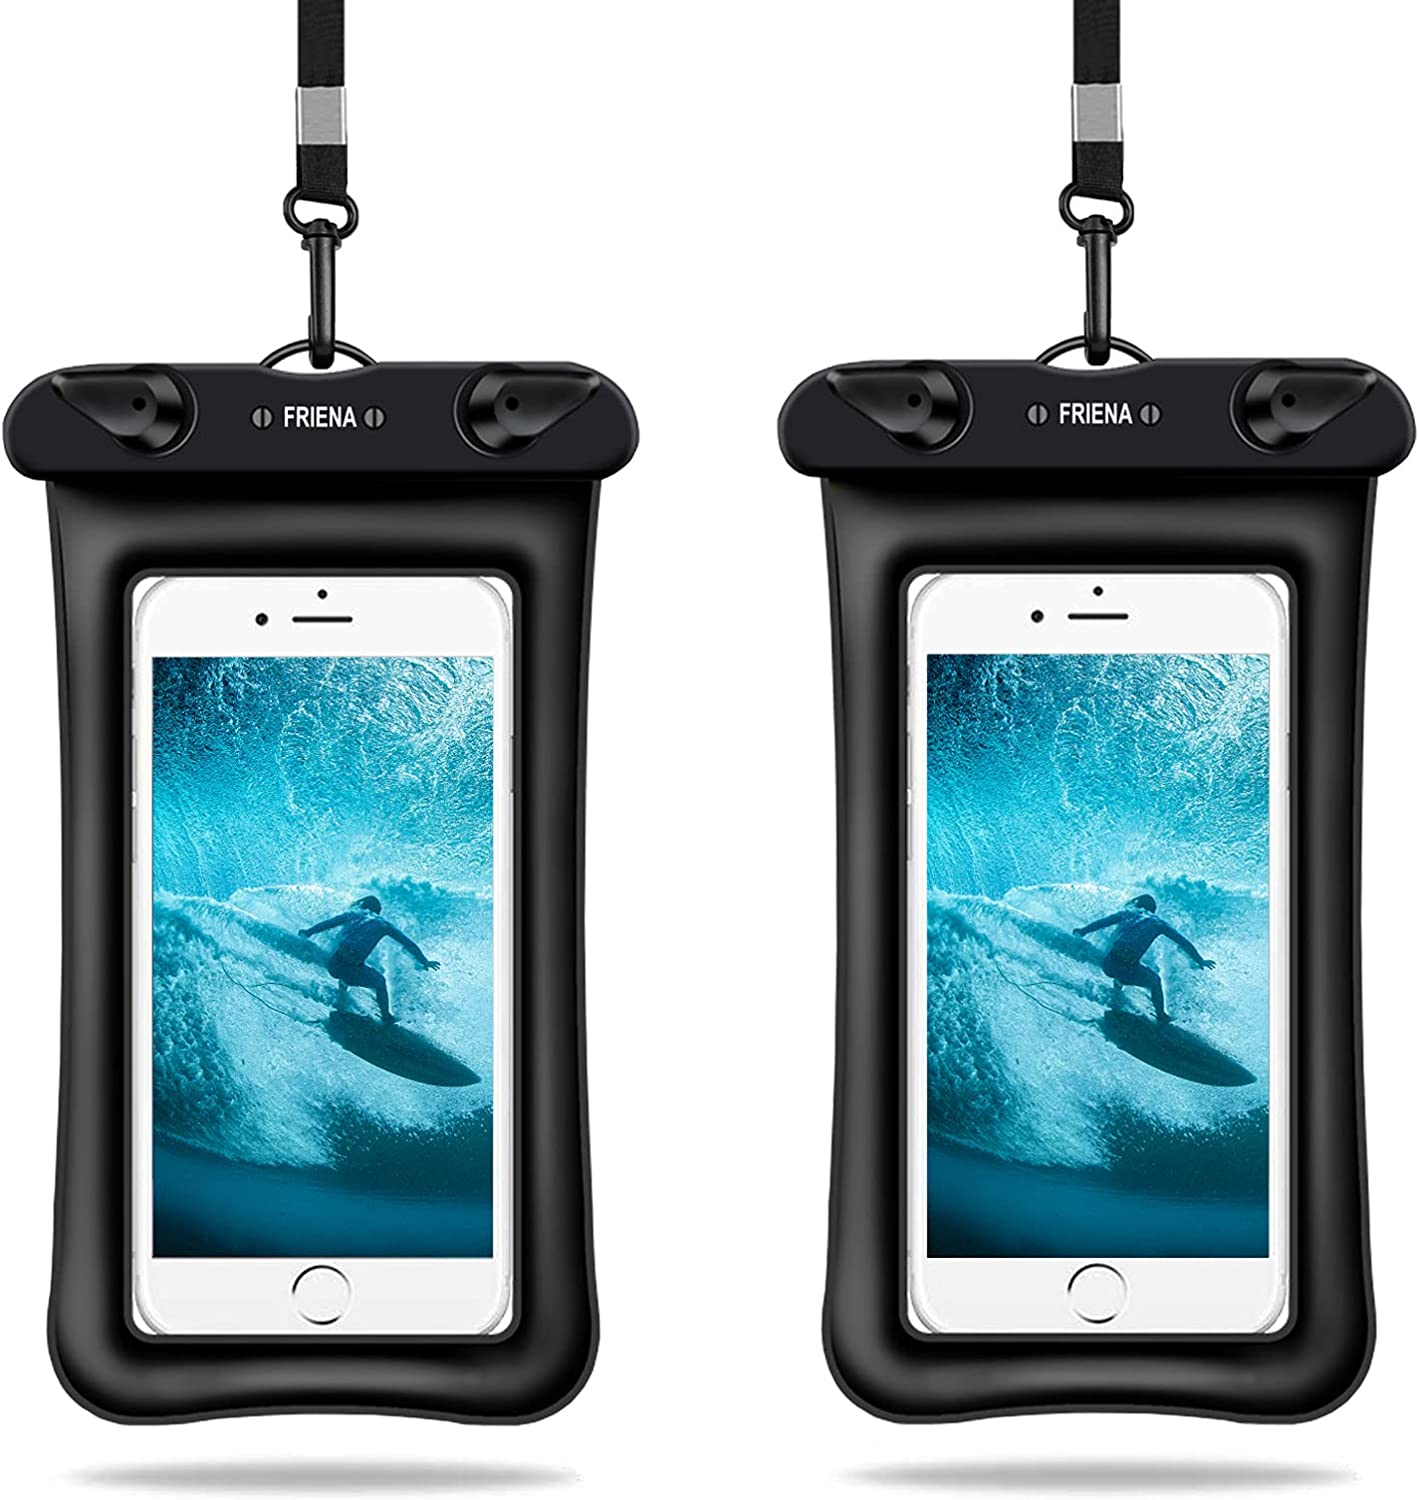 FRIENA Waterproof Phone Pouch Floating IPX8 Universal Waterproof Phone Case Underwater Dry Bags Compatible for iPhone 12/SE/11 Pro/XS Max/XR/X/8P Galaxy S20/S10/S9 Up to 6.9